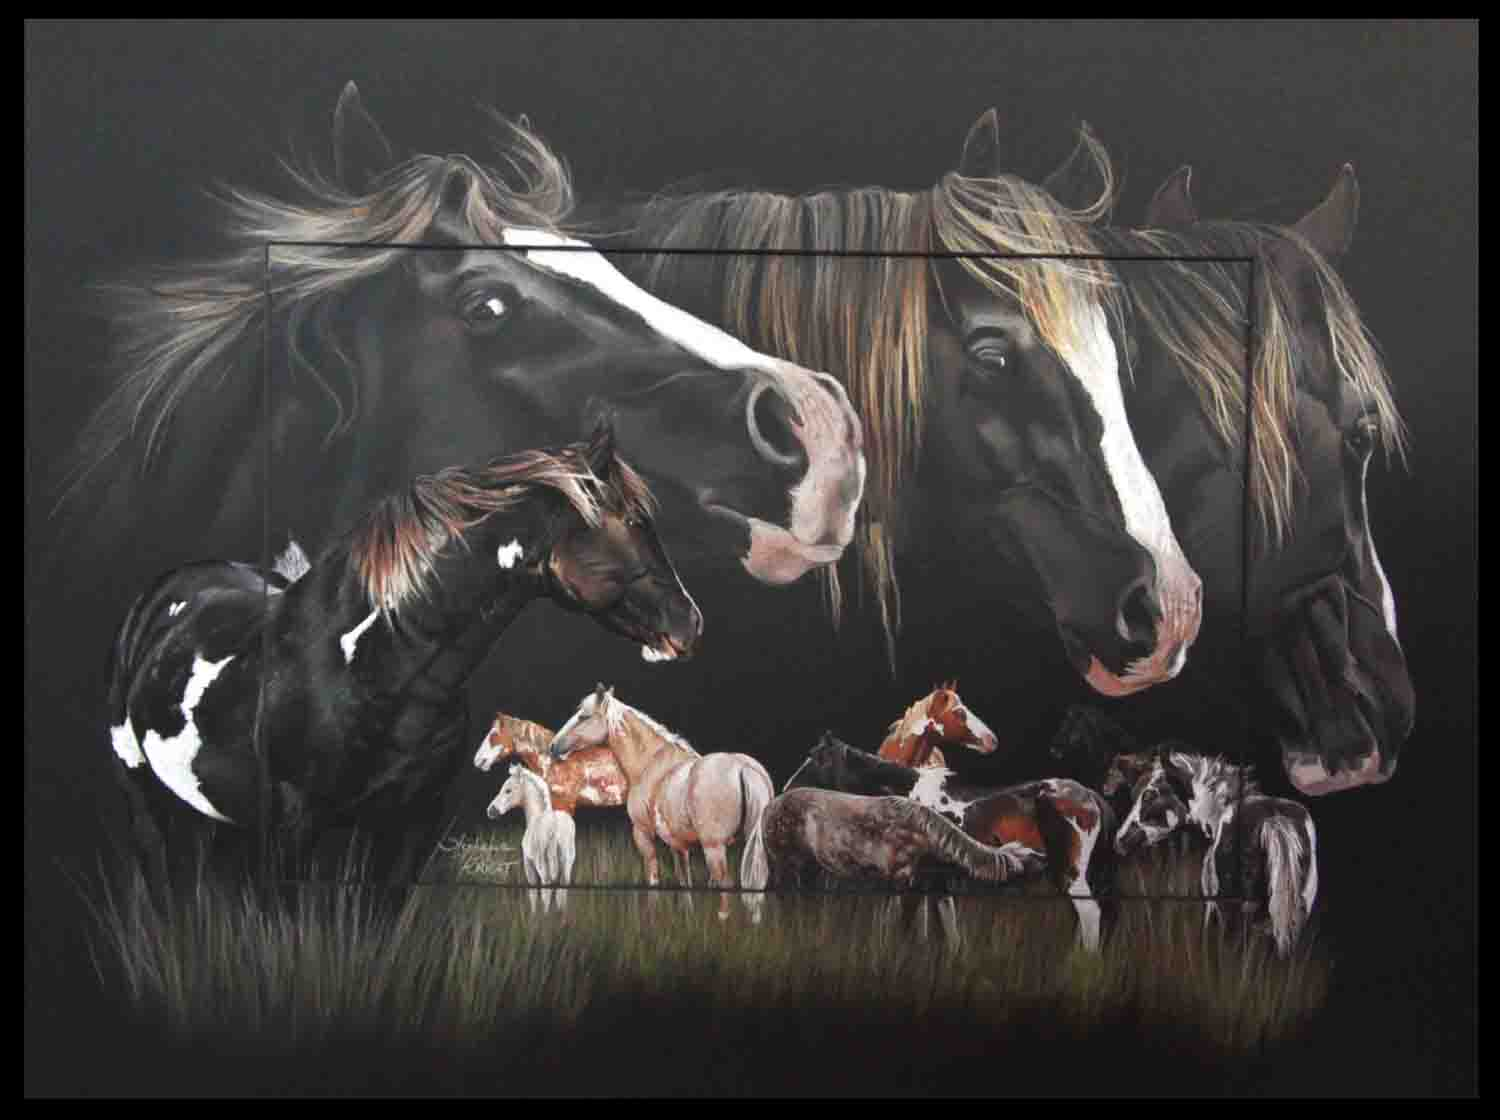 Majesty, mustang stallion - pastel sec - 50x70cm - A V for sale